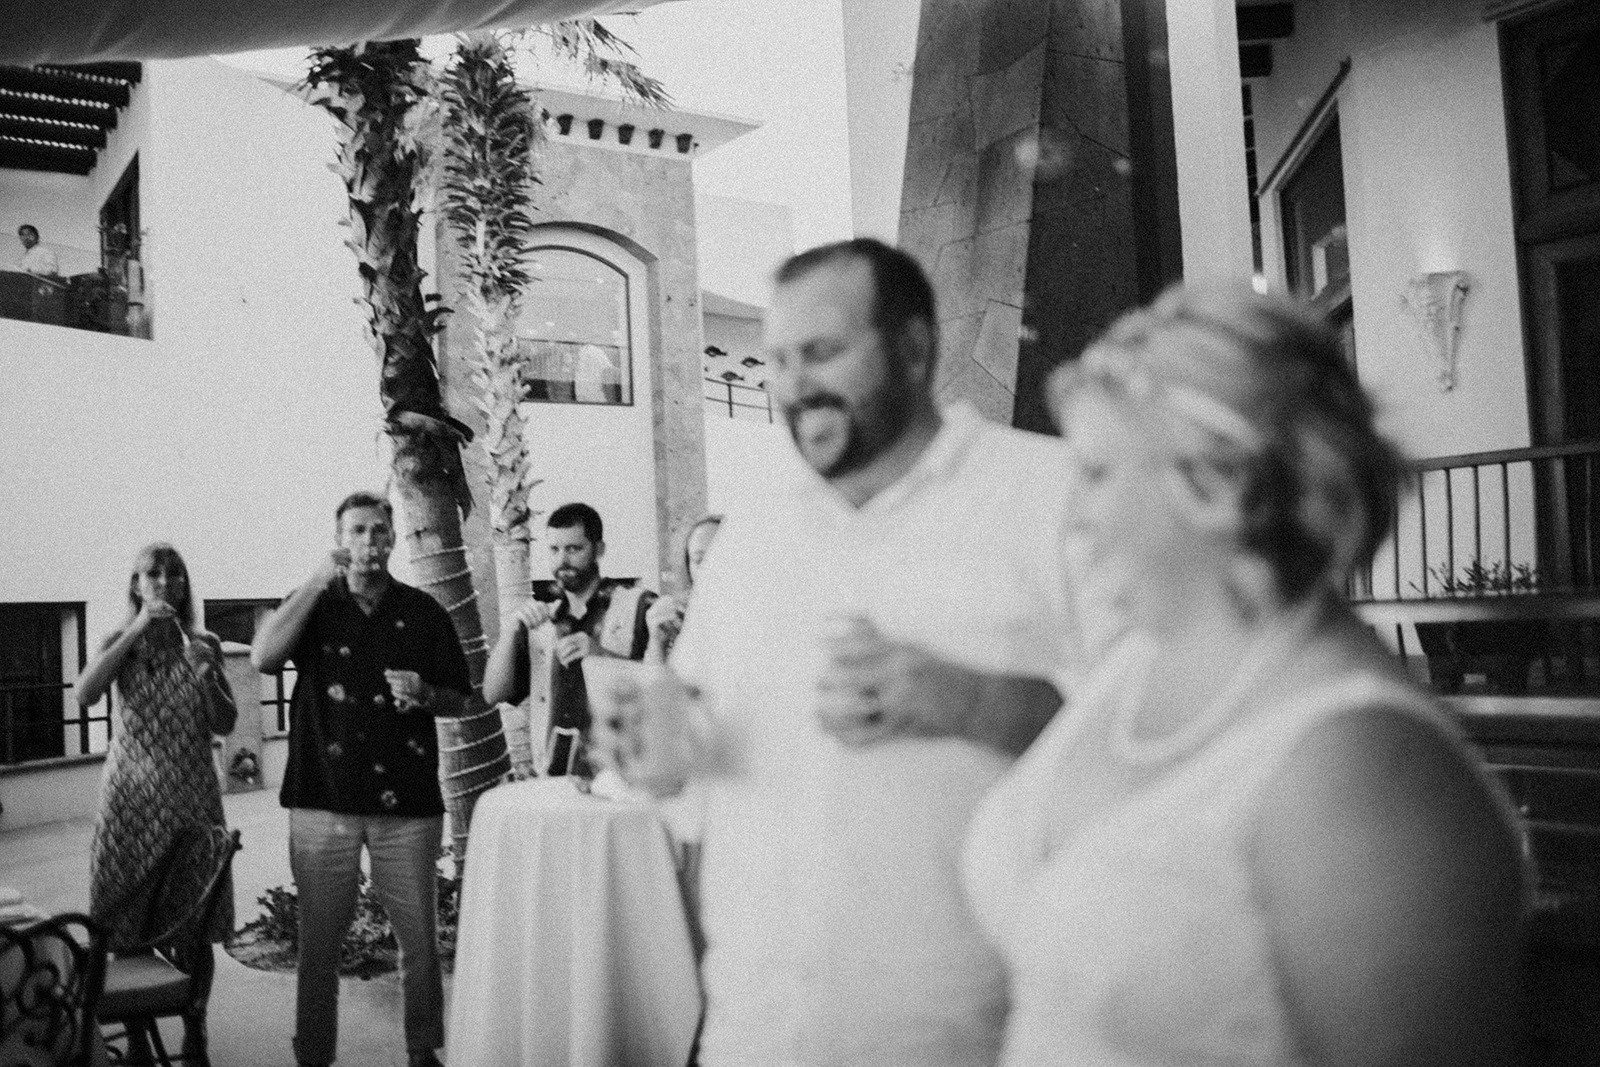 myrtle-and-moss-photography-meghan-and-chad-cabo-wedding-blog-post71